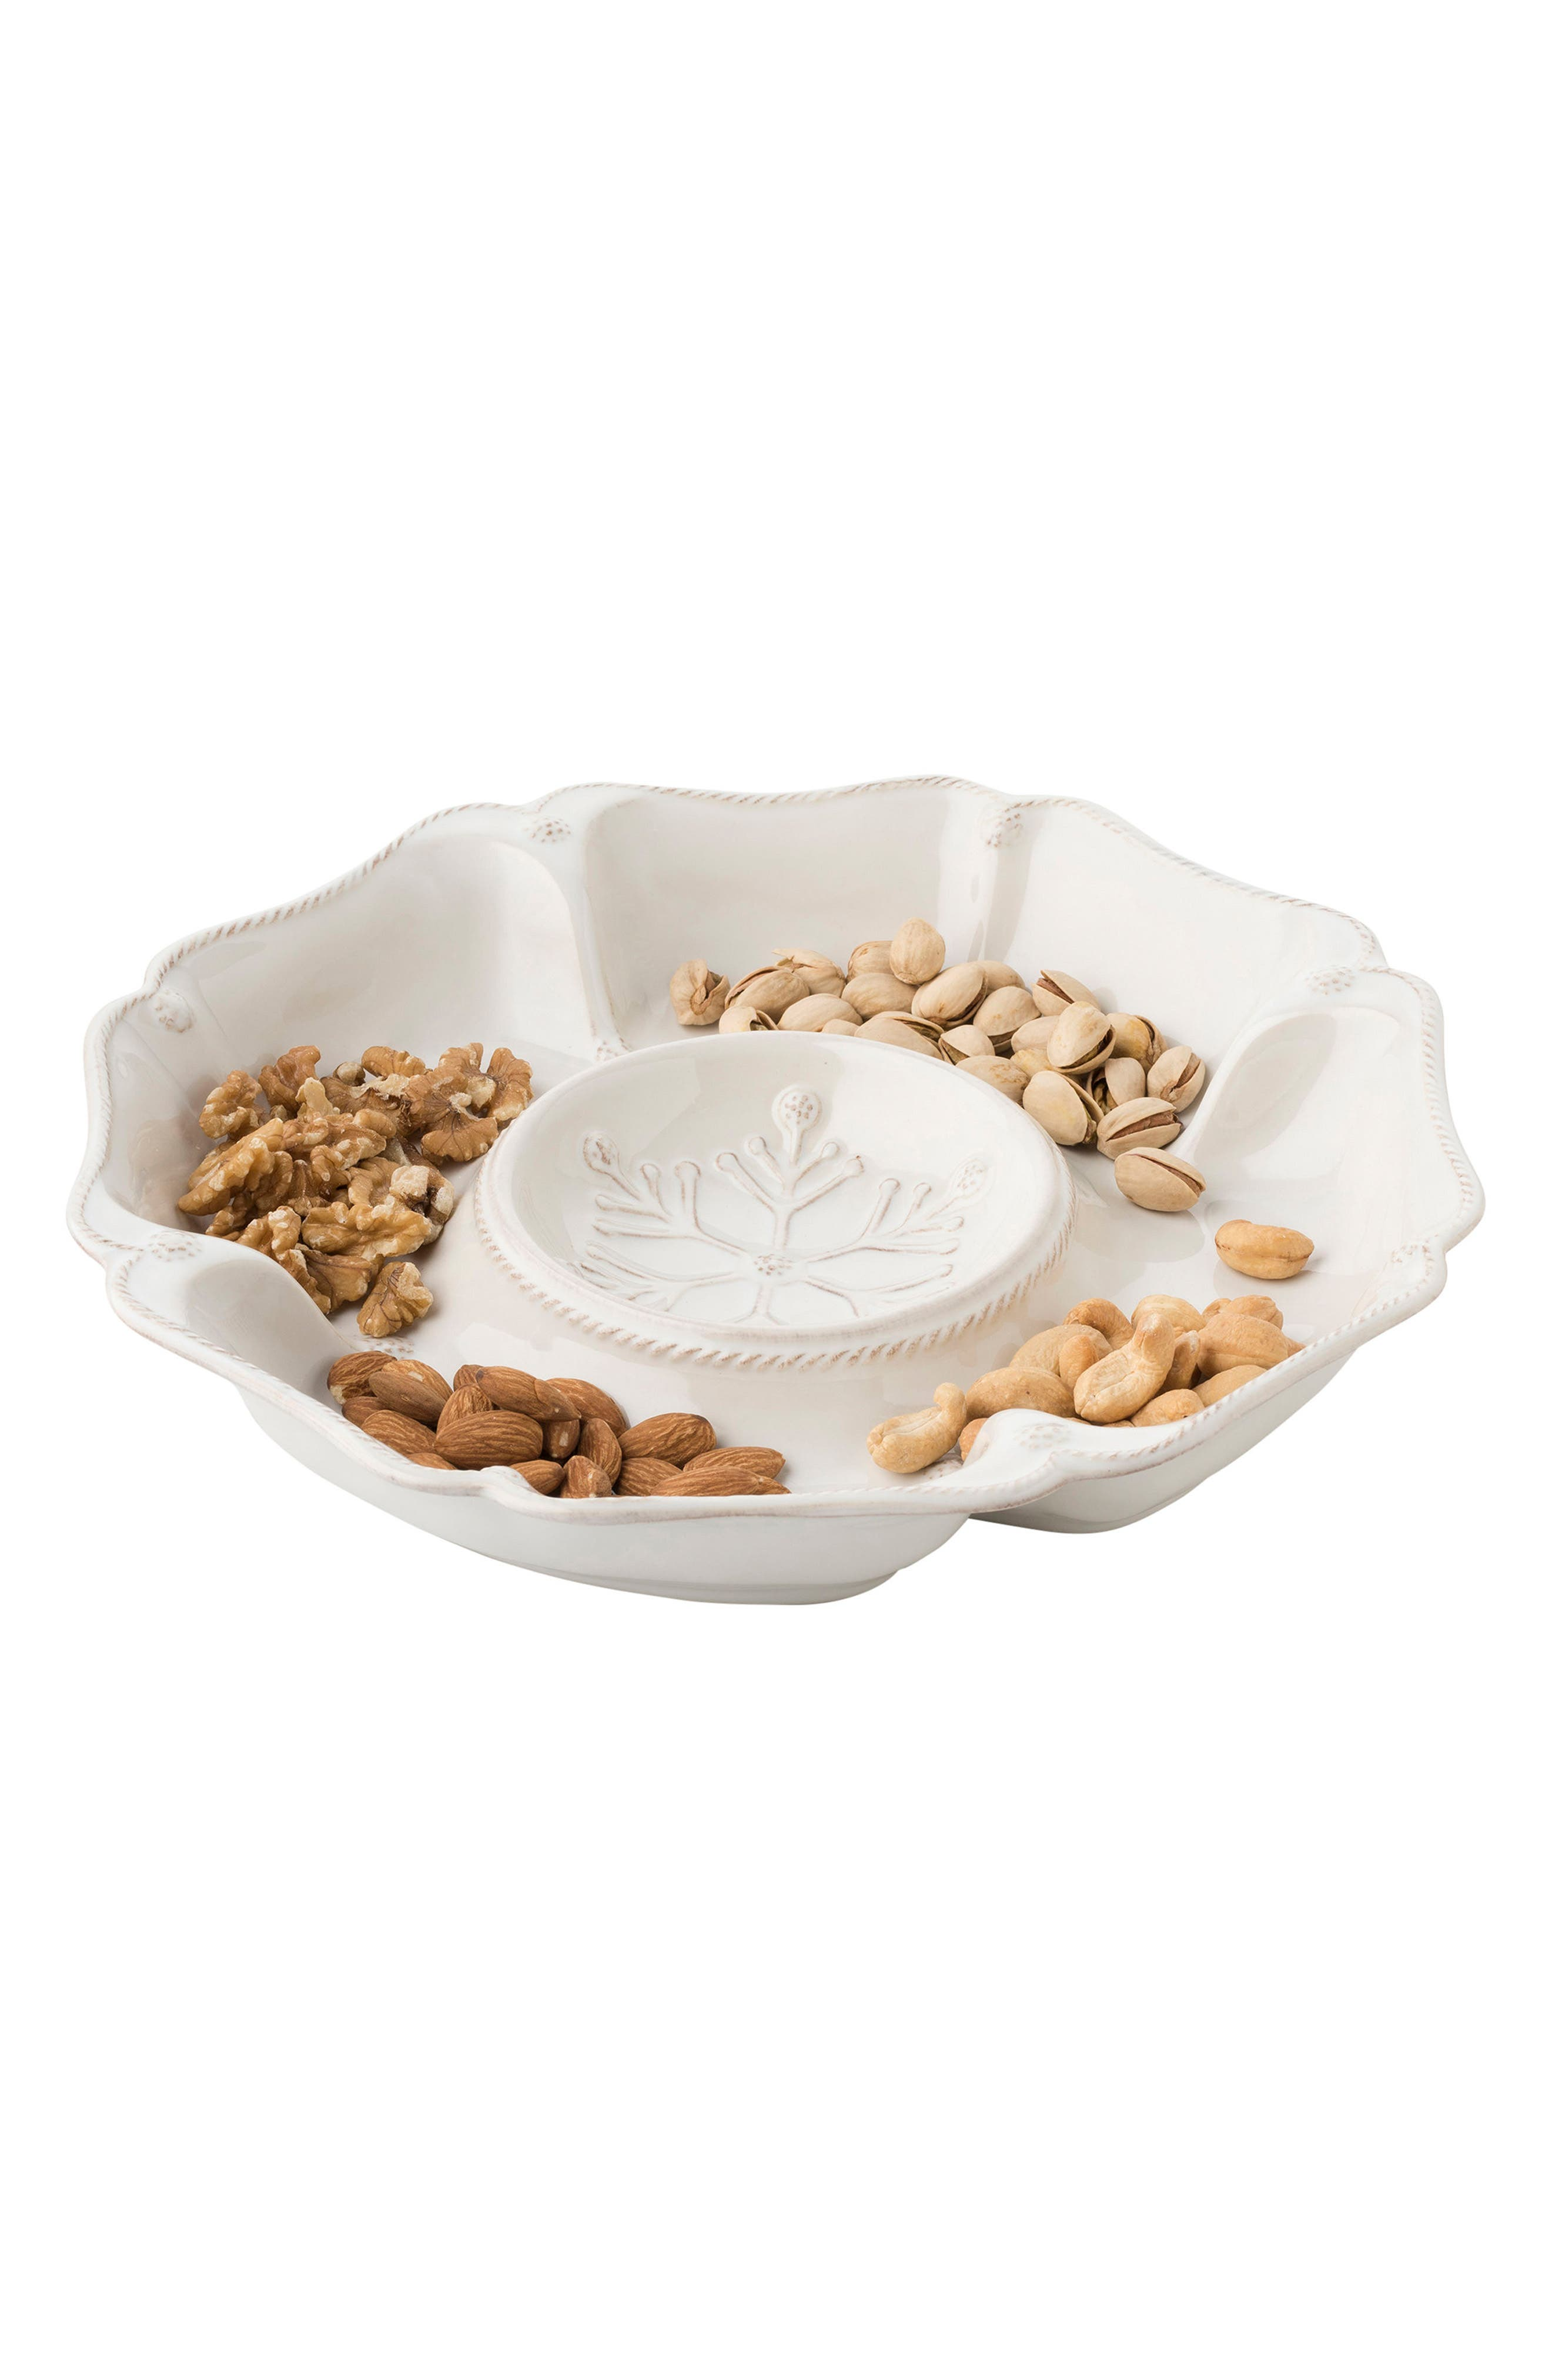 Berry & Thread Ceramic Hors D'Oeuvres Serving Tray,                             Alternate thumbnail 2, color,                             Whitewash